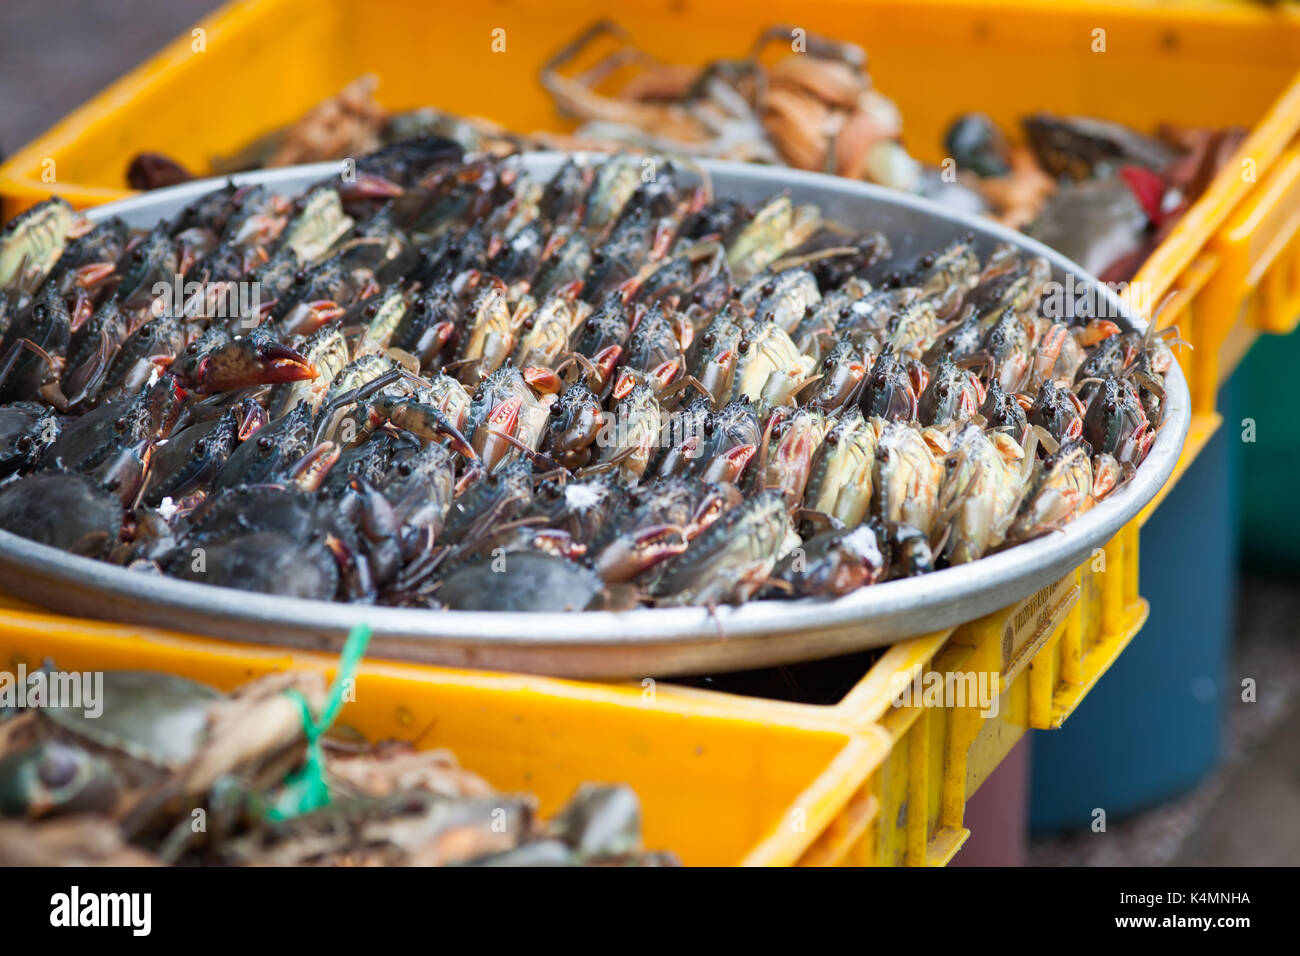 crabs on sale at the market - Stock Image